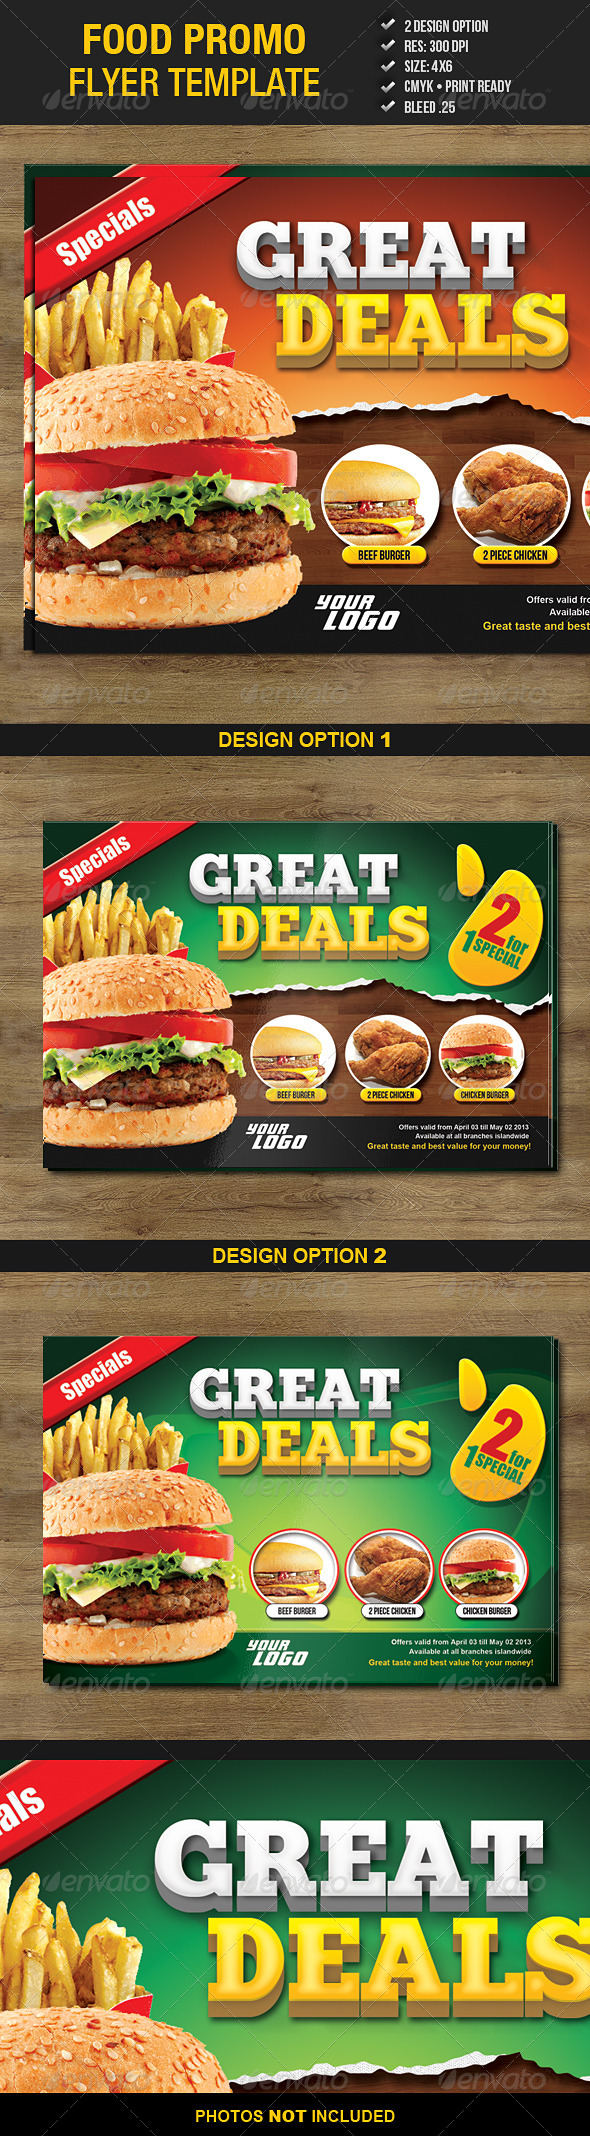 Food Promo Flyer Template - Restaurant Flyers